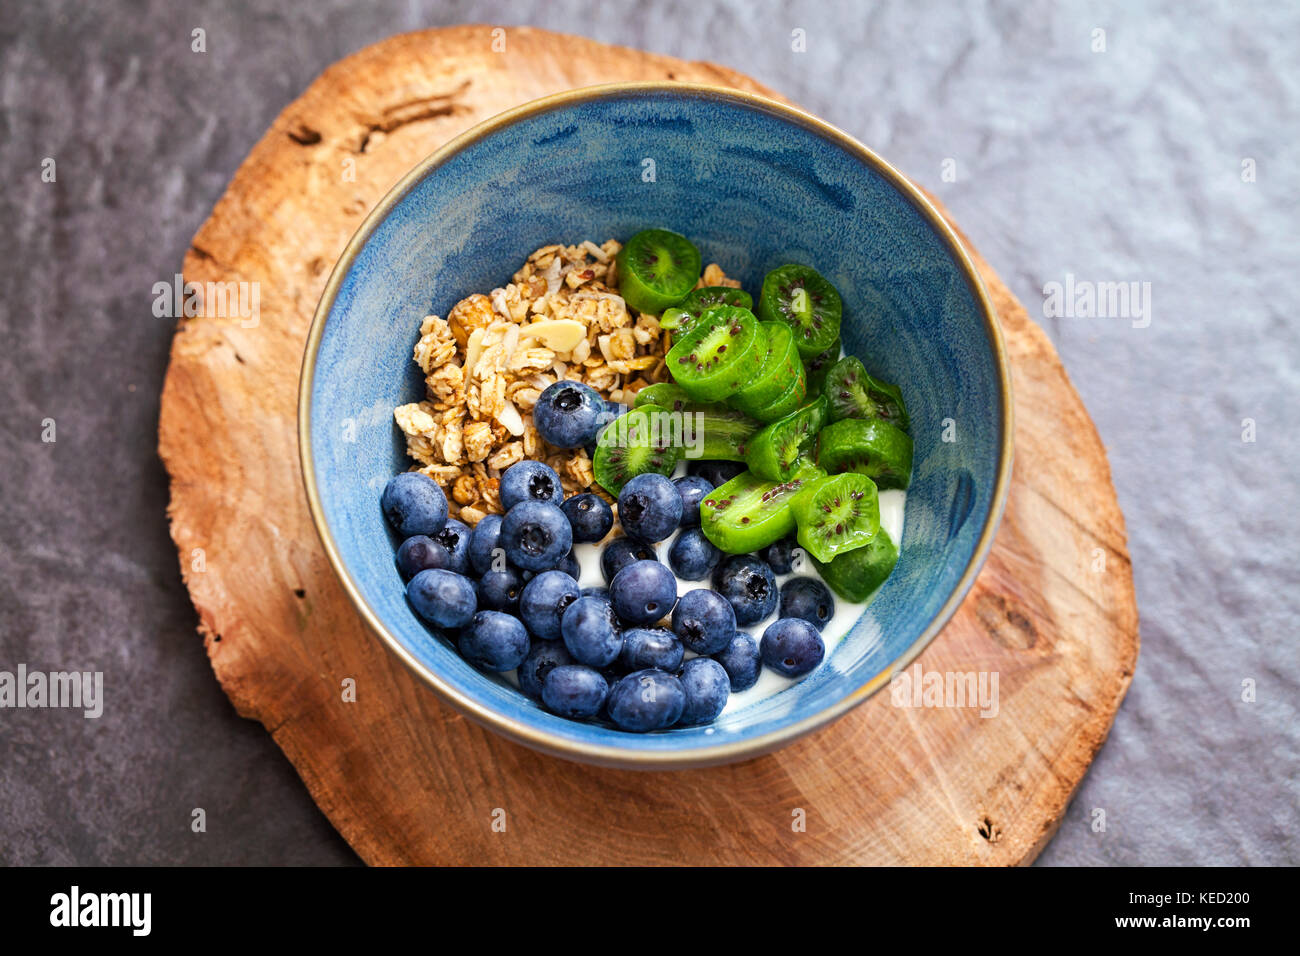 Yogurt with kiwi berries, blueberries and granola - Stock Image